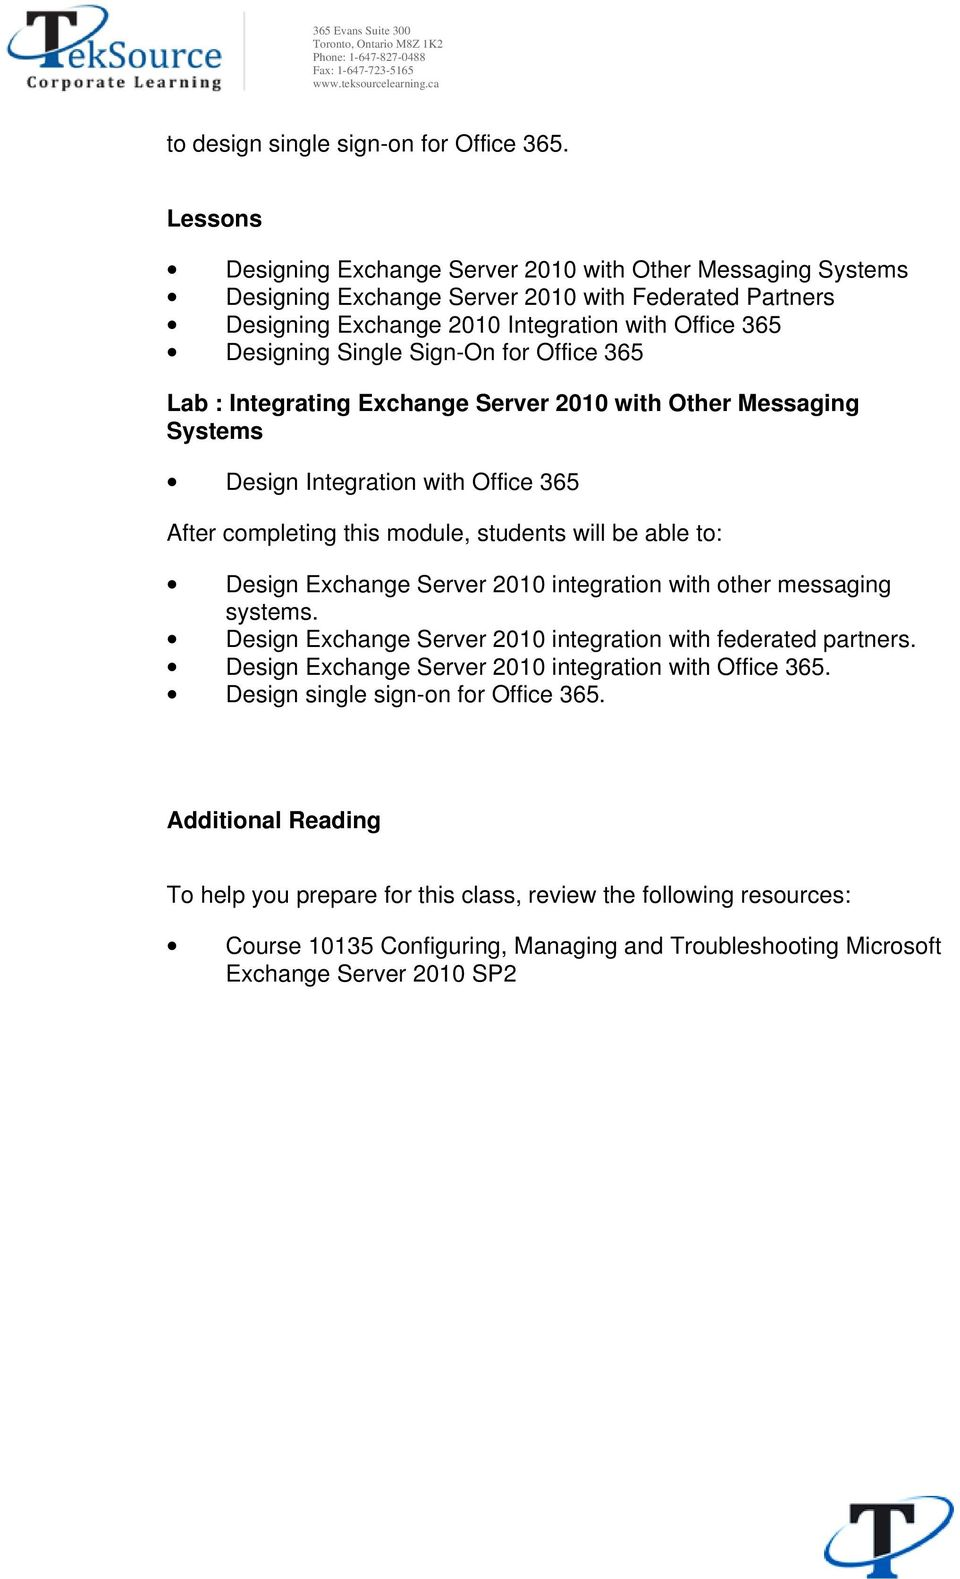 Sign-On for Office 365 Lab : Integrating Exchange Server 2010 with Other Messaging Systems Design Integration with Office 365 Design Exchange Server 2010 integration with other messaging